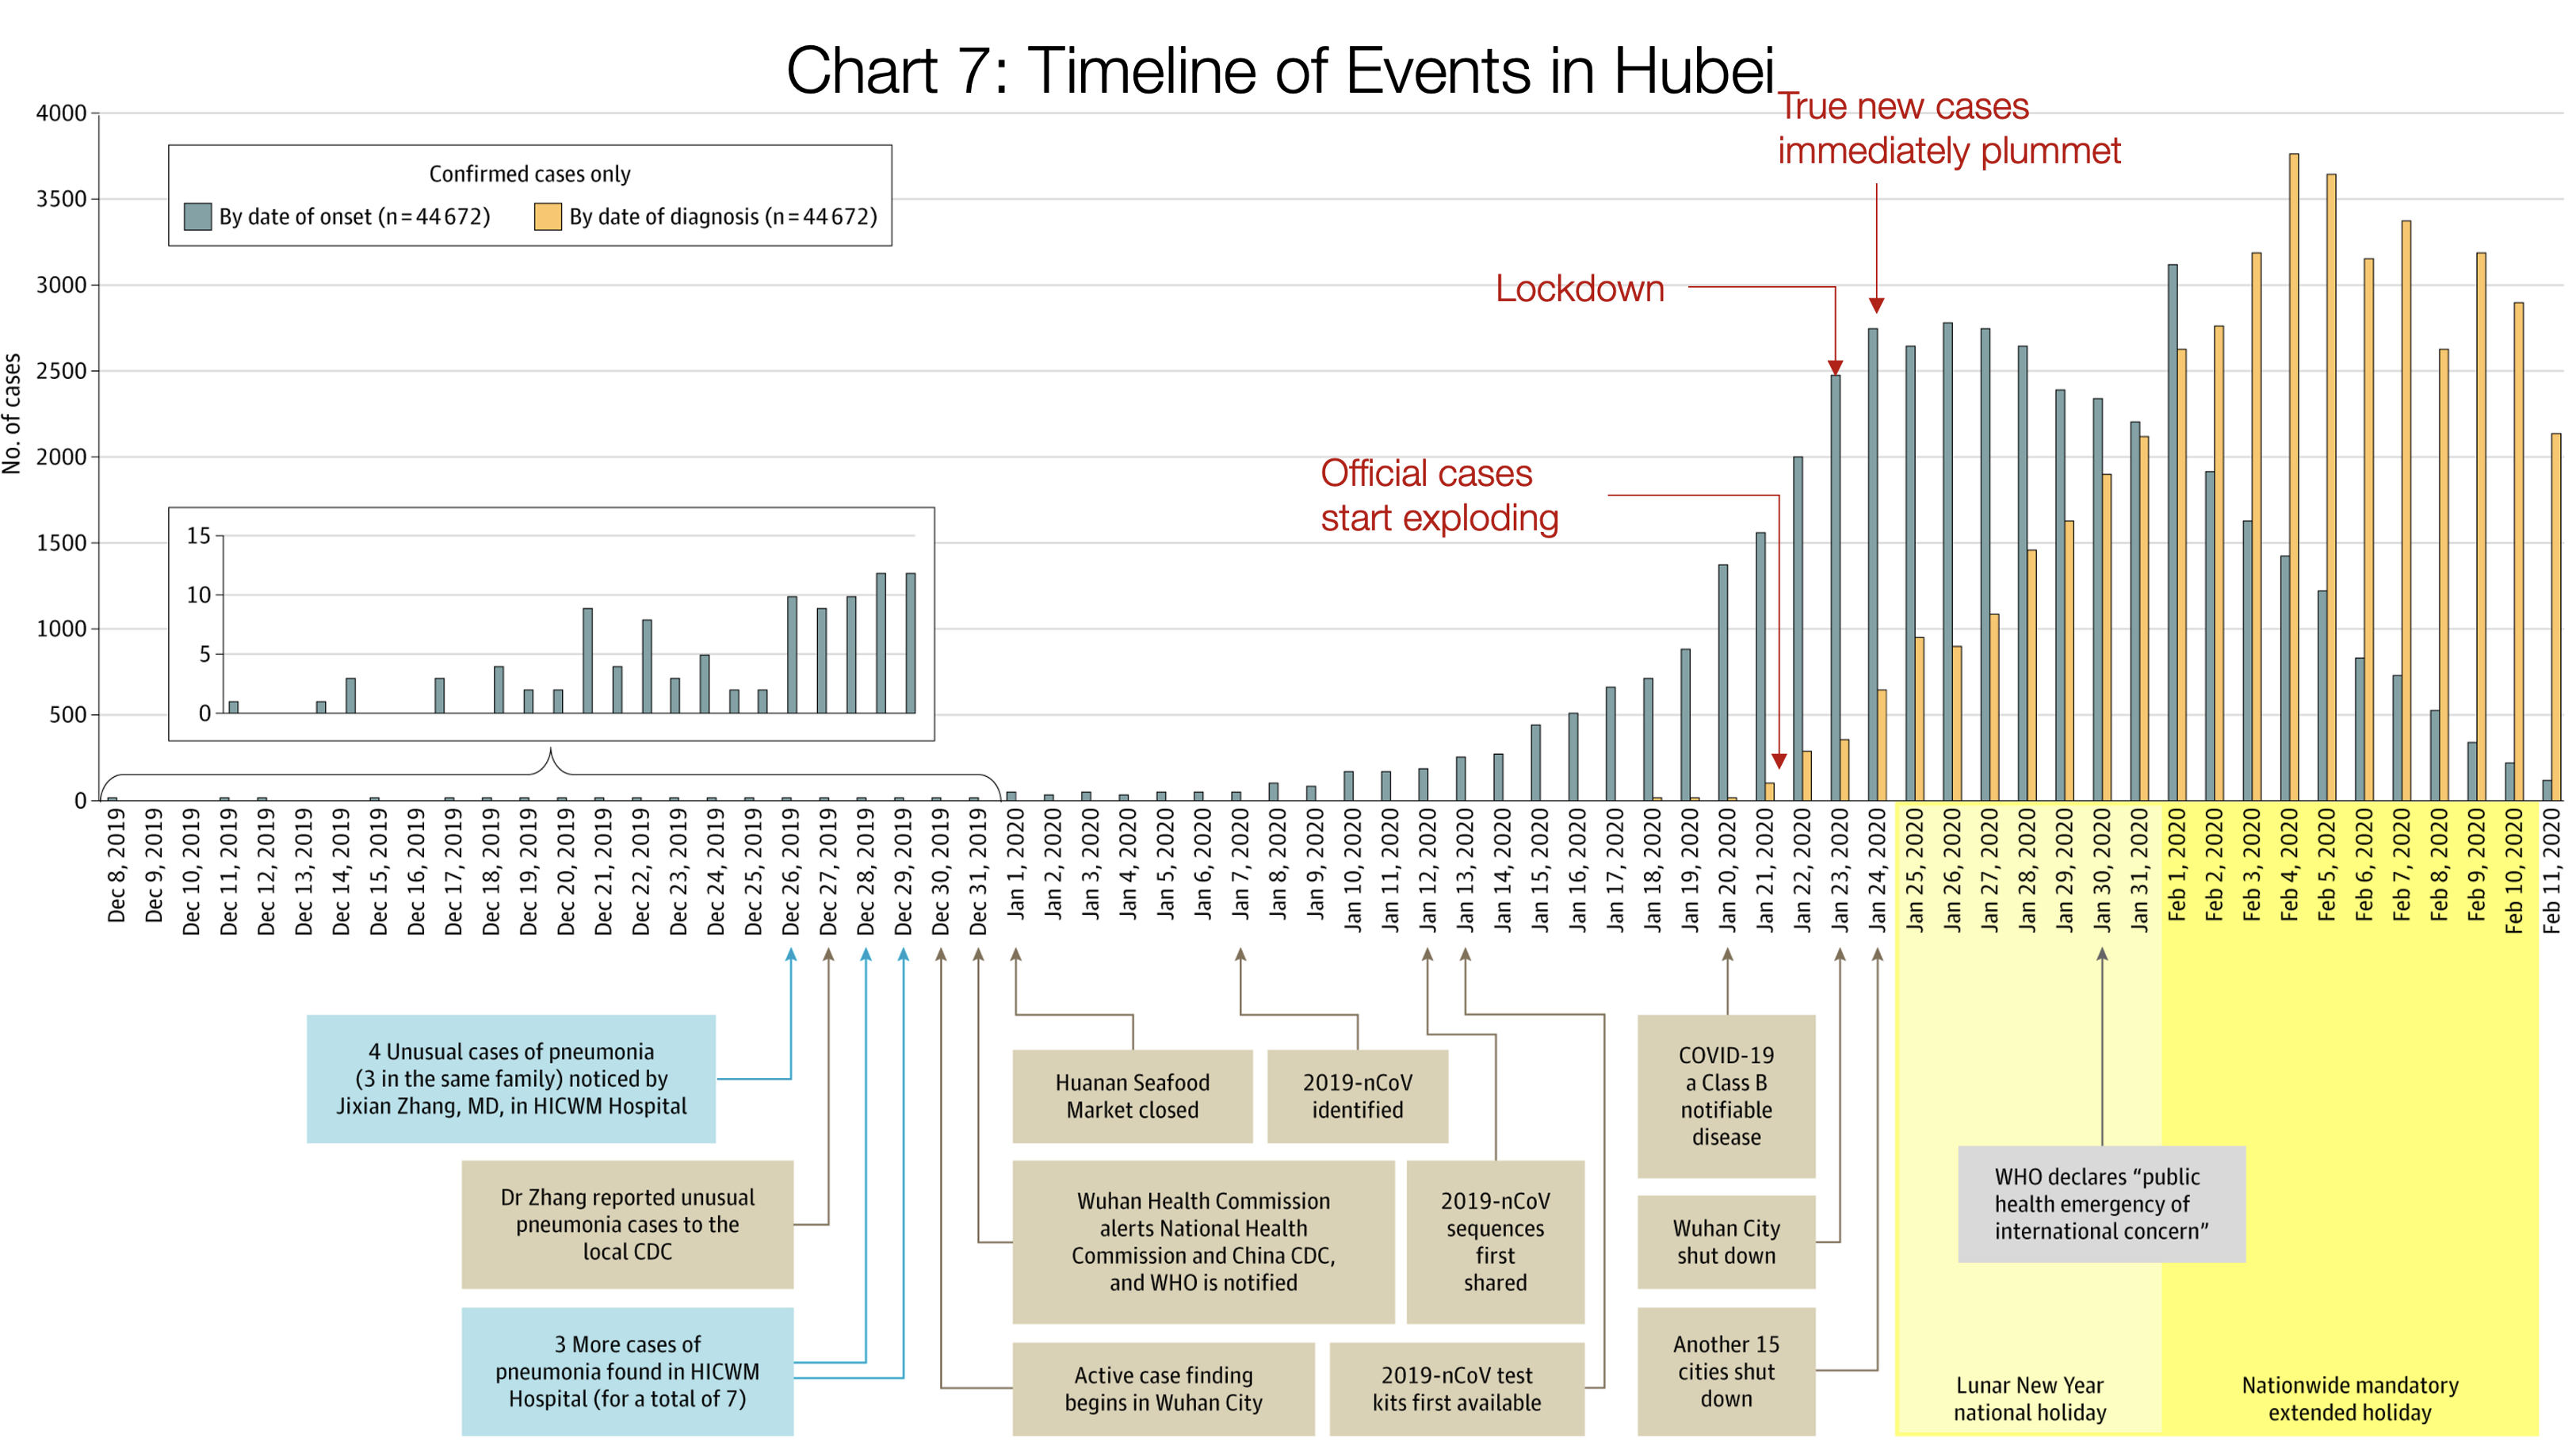 7. Timeline of Events in Hubei